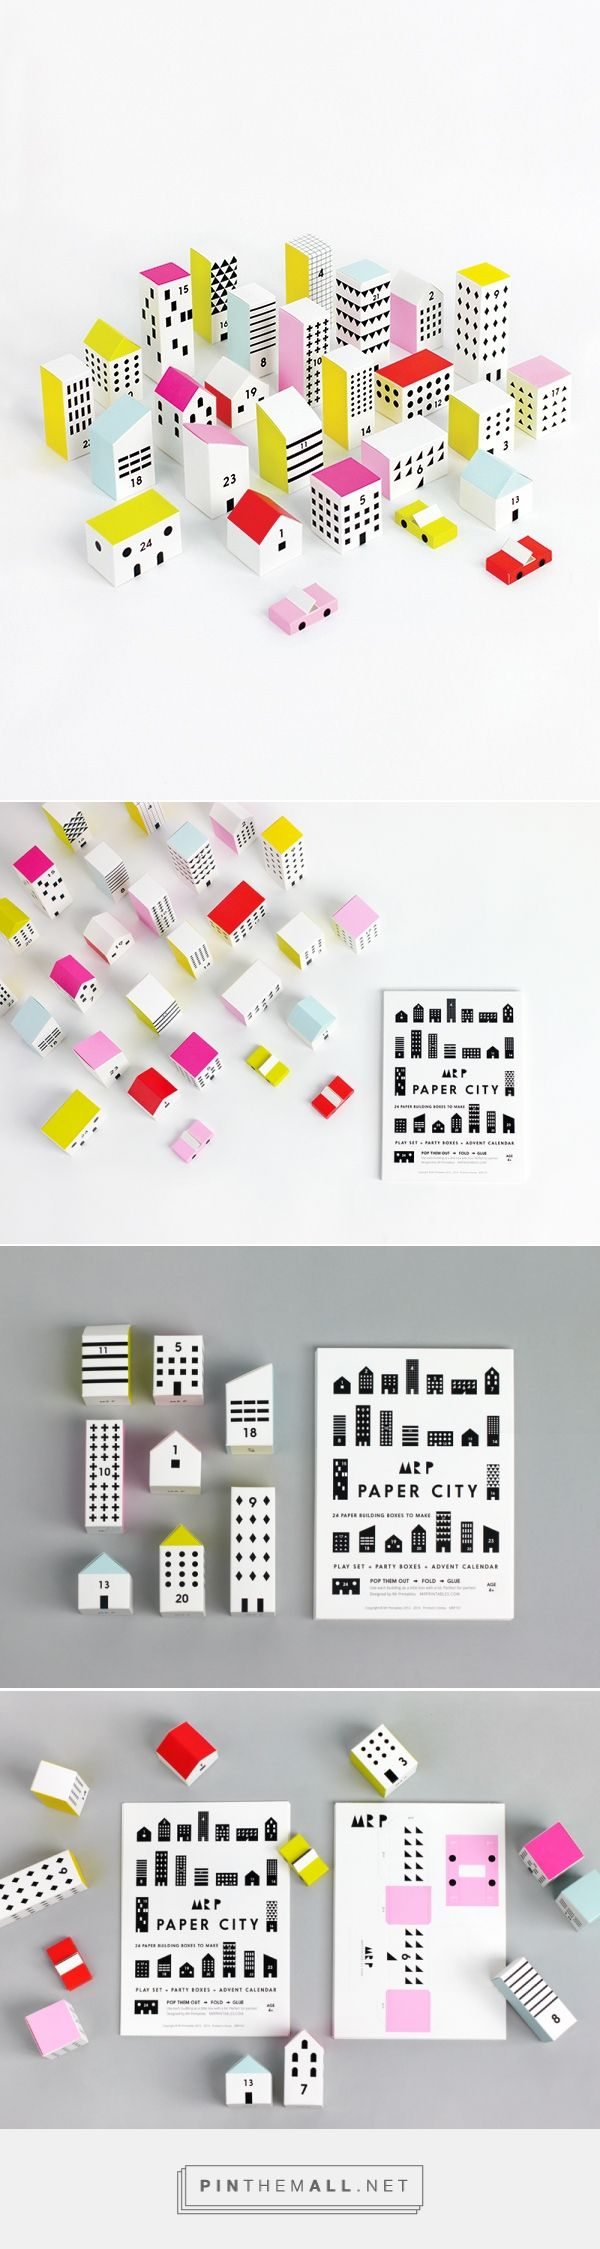 PAPER CITY | 24 cards with pre-cut and pre fold lines | Ready to make building boxes numbered 1-24 | Perfect for imaginary play & hiding little treats inside each house.